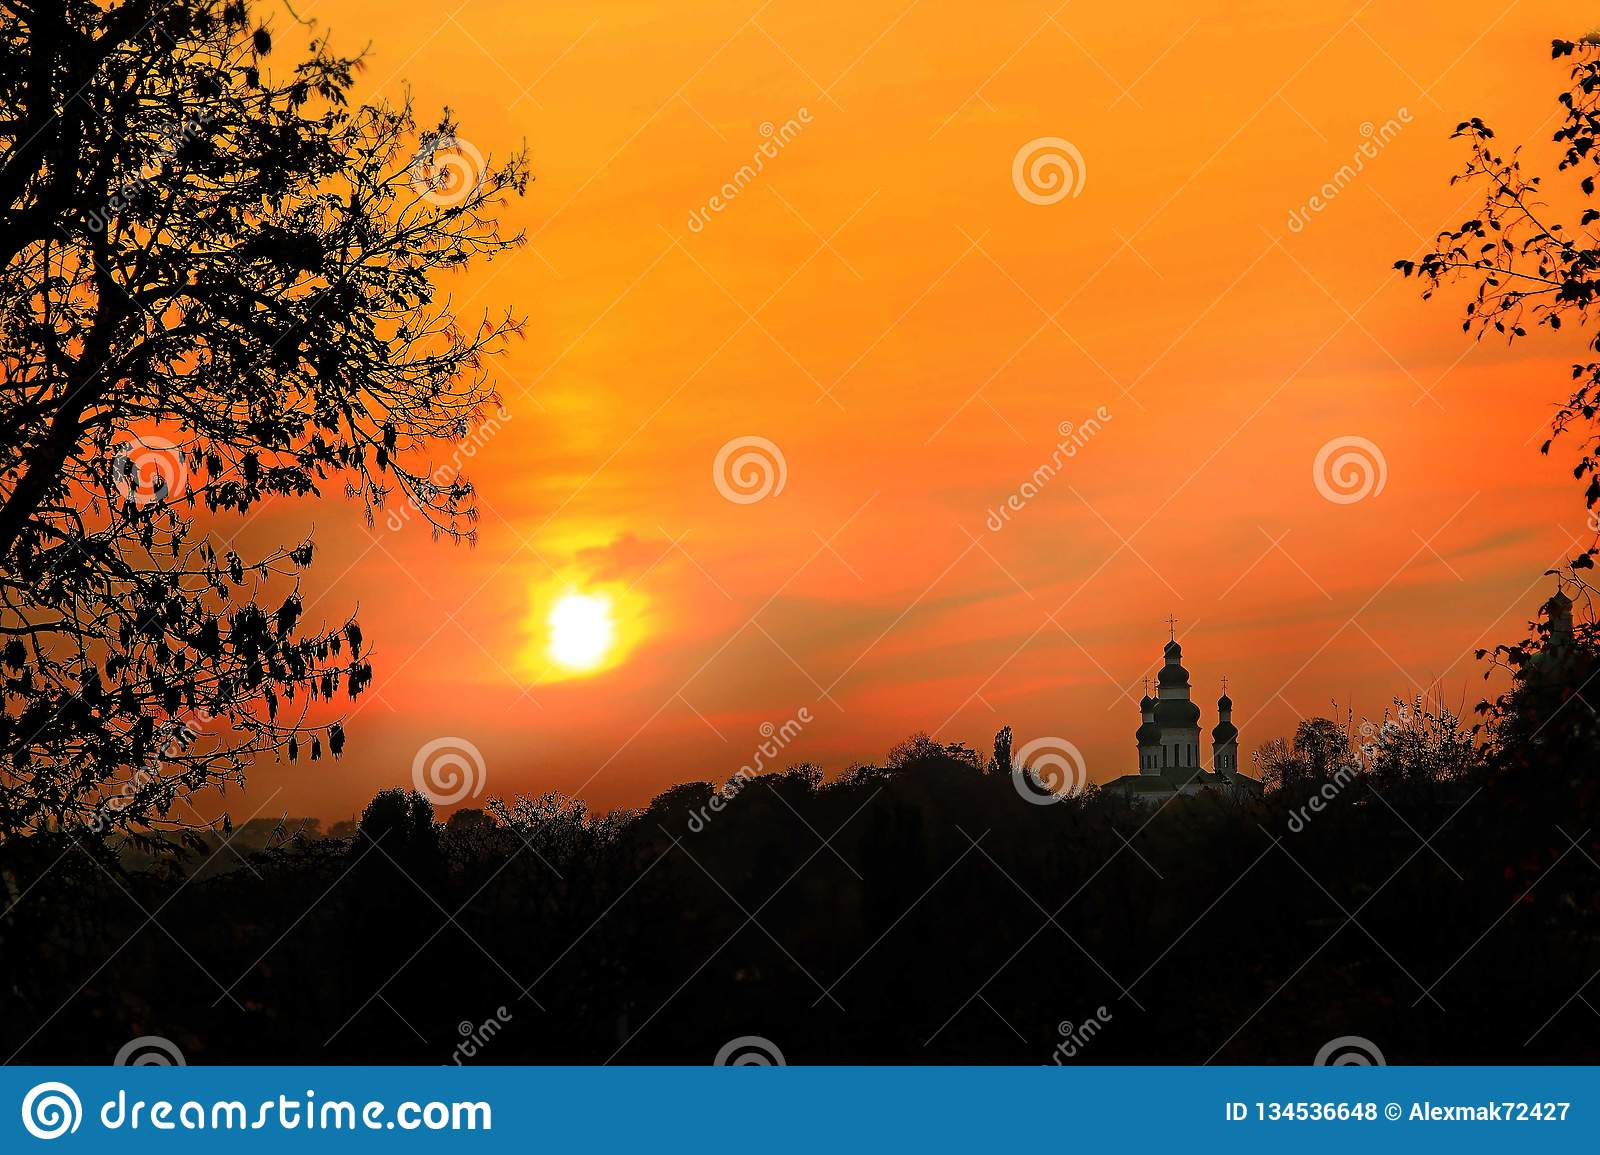 Orange sunset with beautiful evening landscape. Twilight with bright sunset.